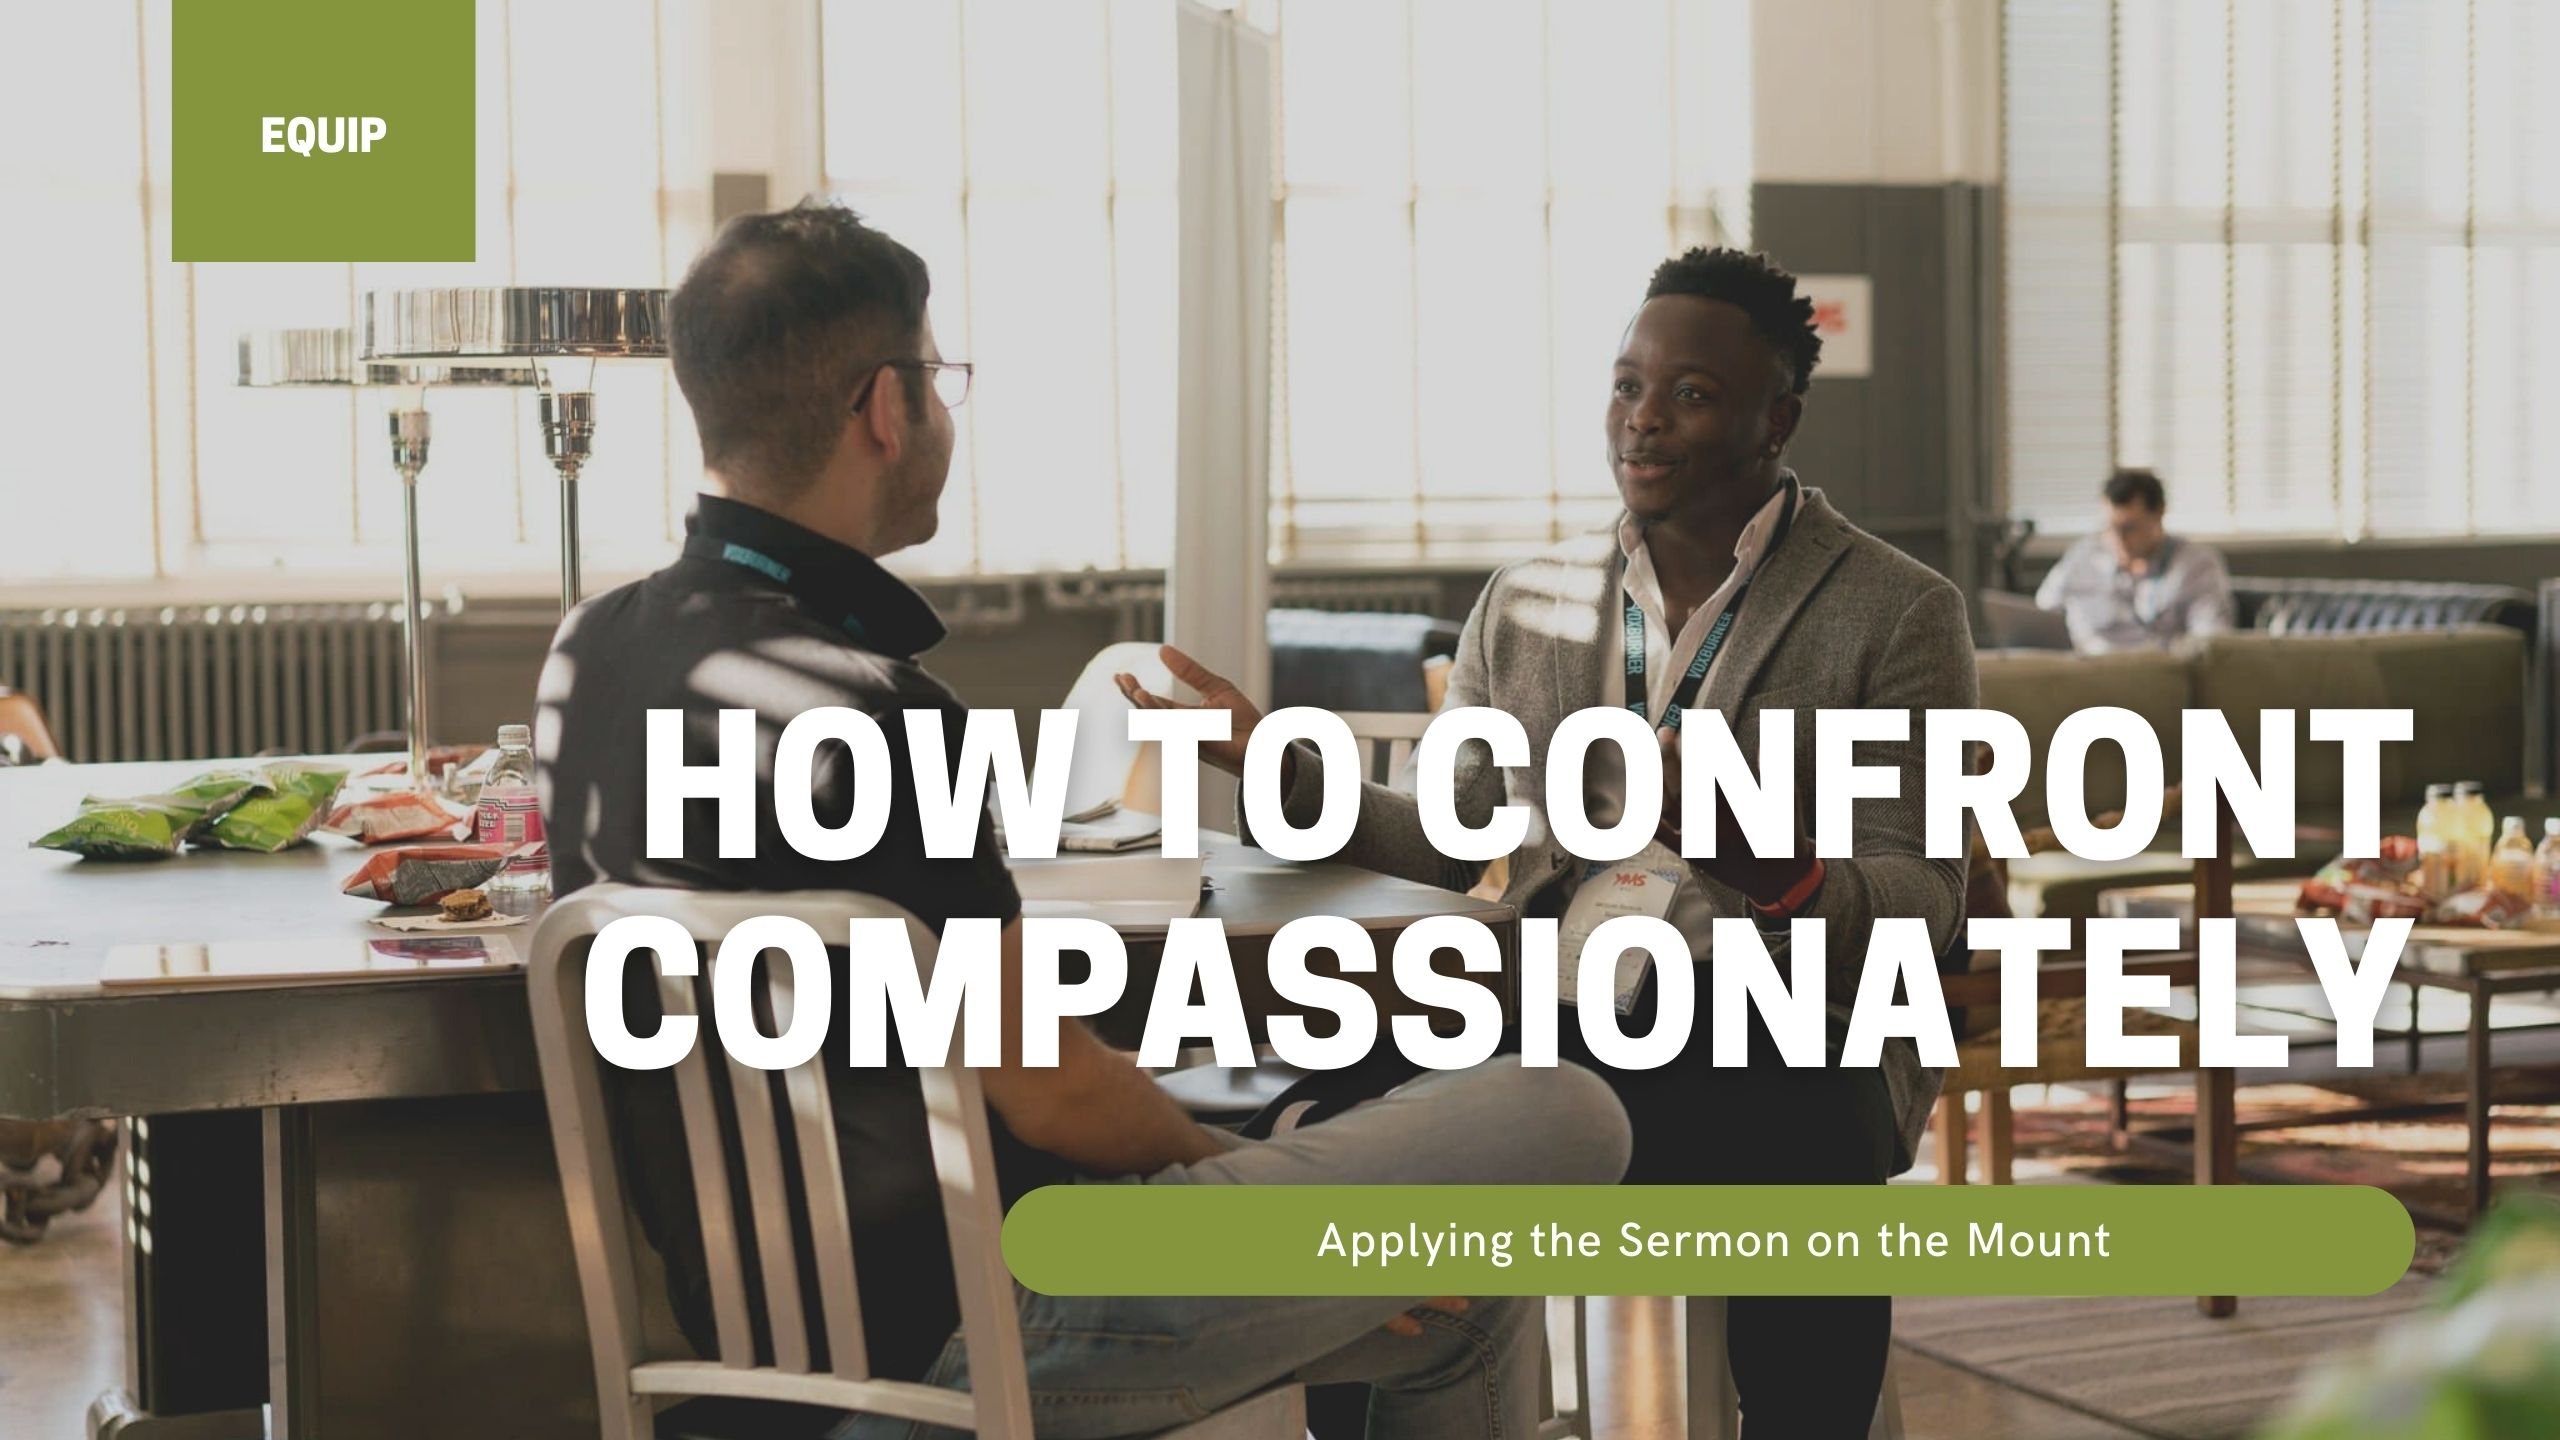 How to Confront Compassionately